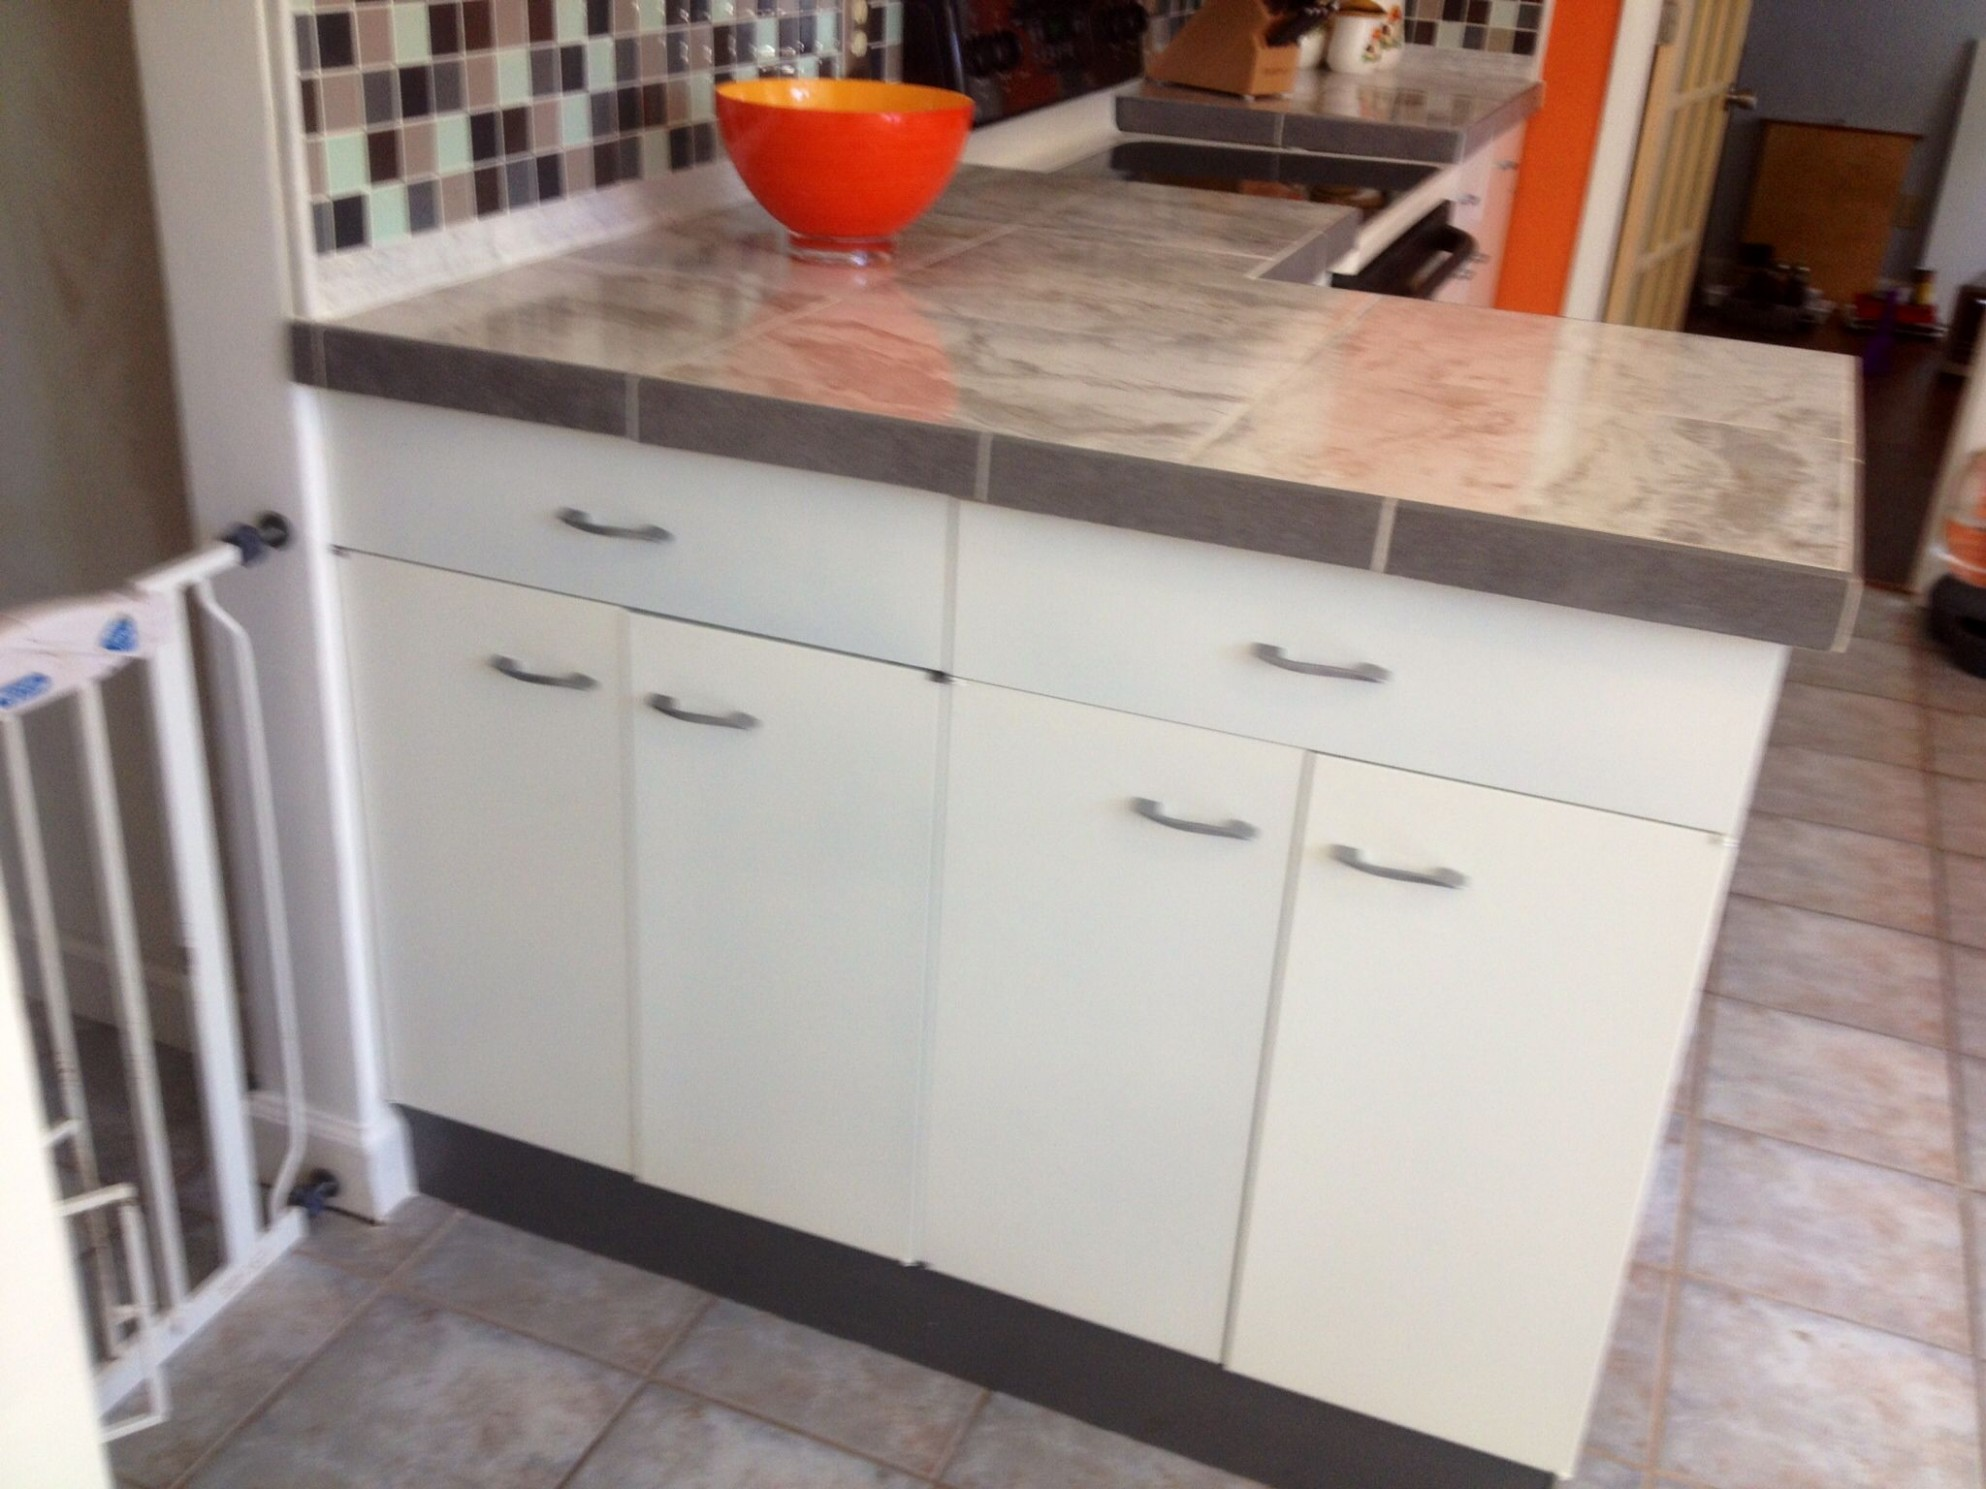 Our vintage St. Charles metal kitchen cabinets